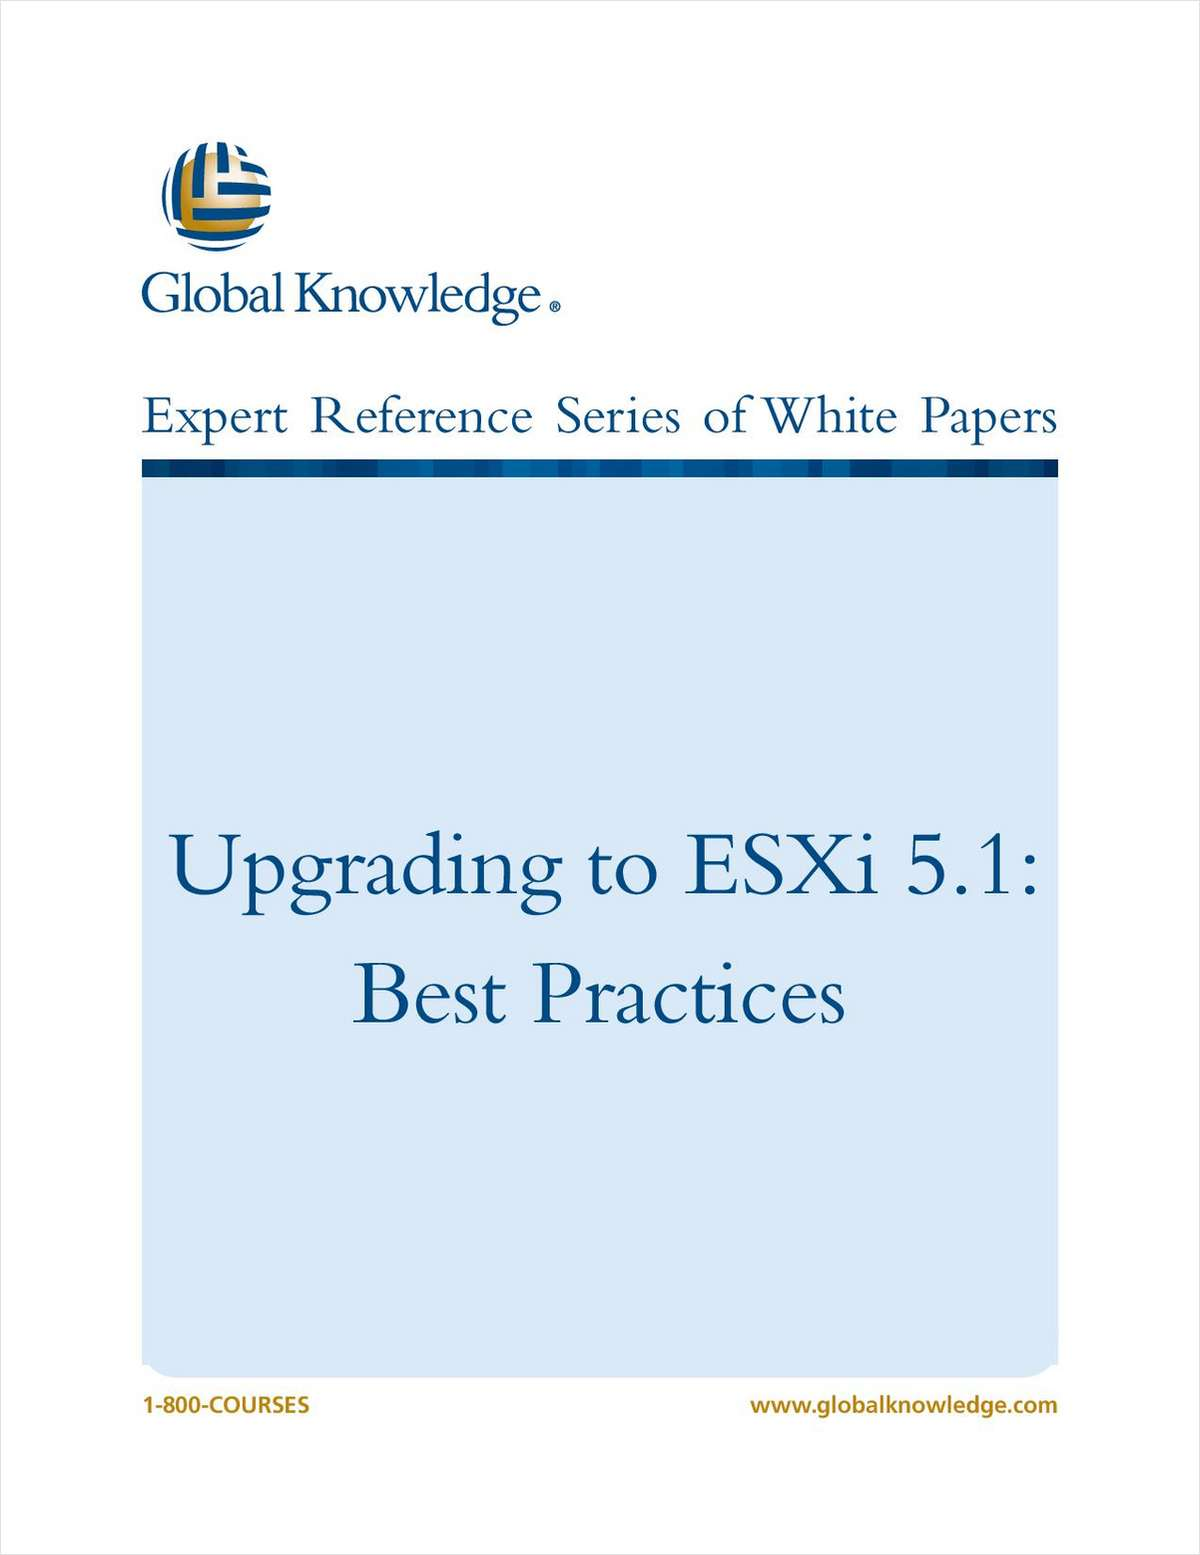 Upgrading to esxi 5 1 best practices free global knowledge white paper